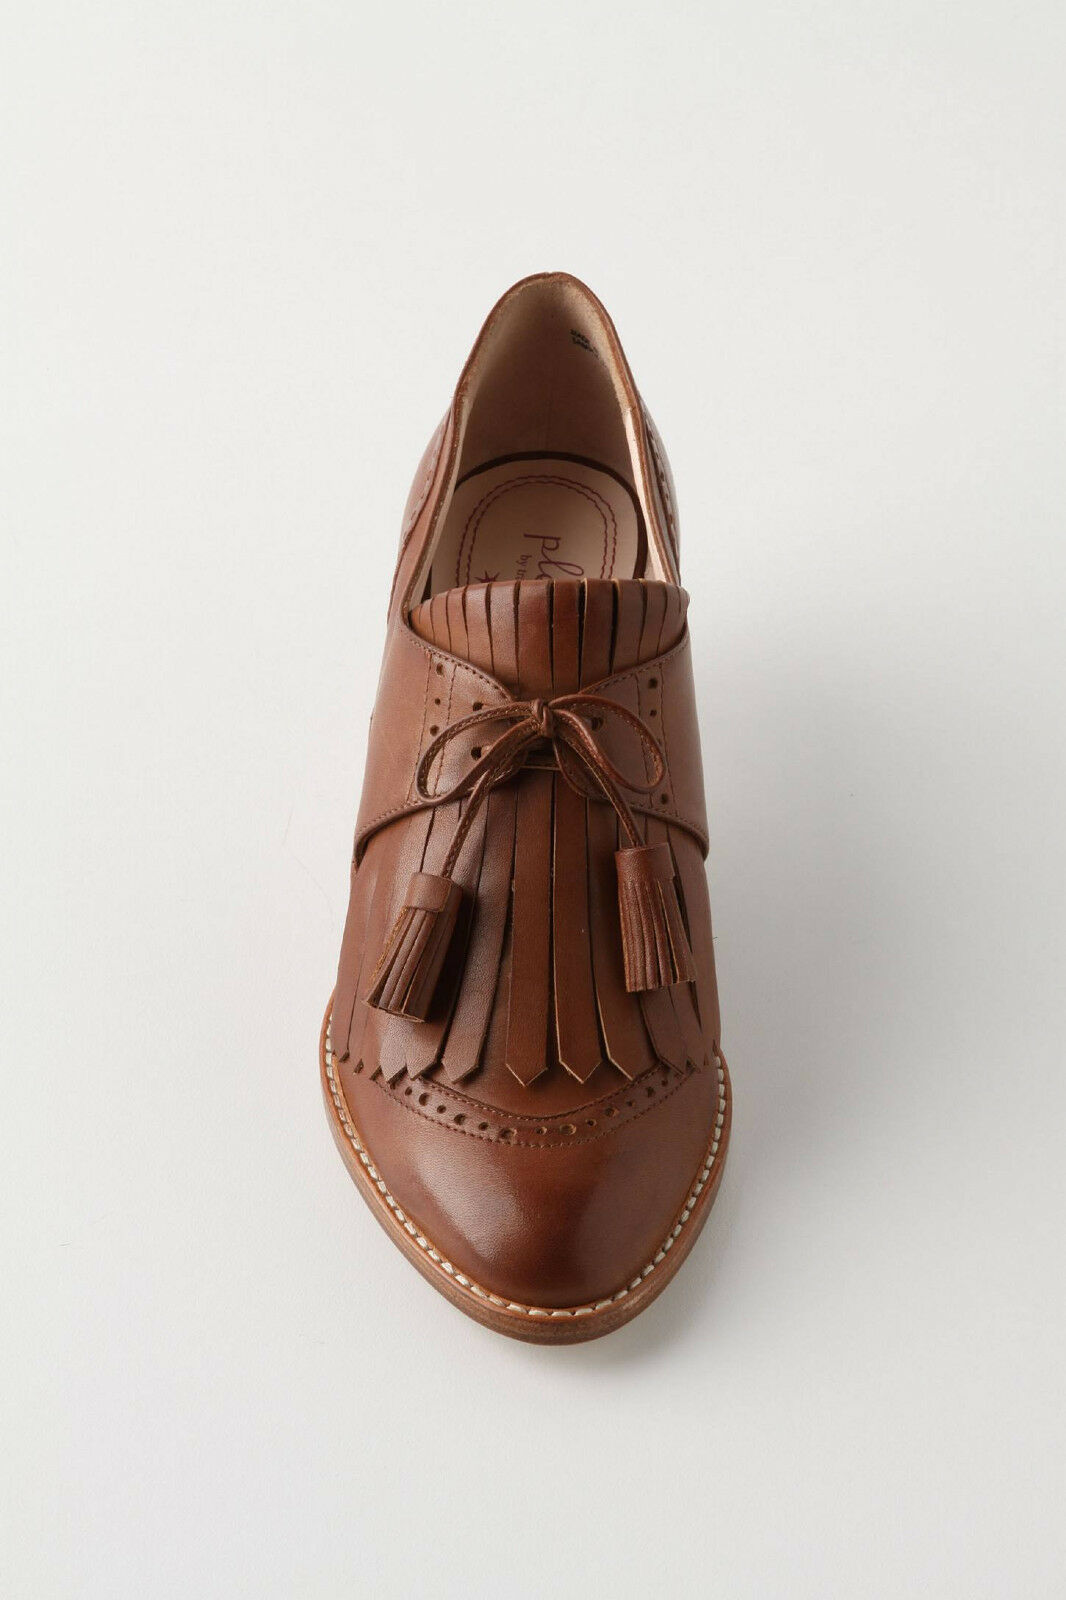 Anthropologie Fortnight Oxfords High Heels Tracy Pumps Leder Schuhes By Tracy Heels Reese 36 bc37a8